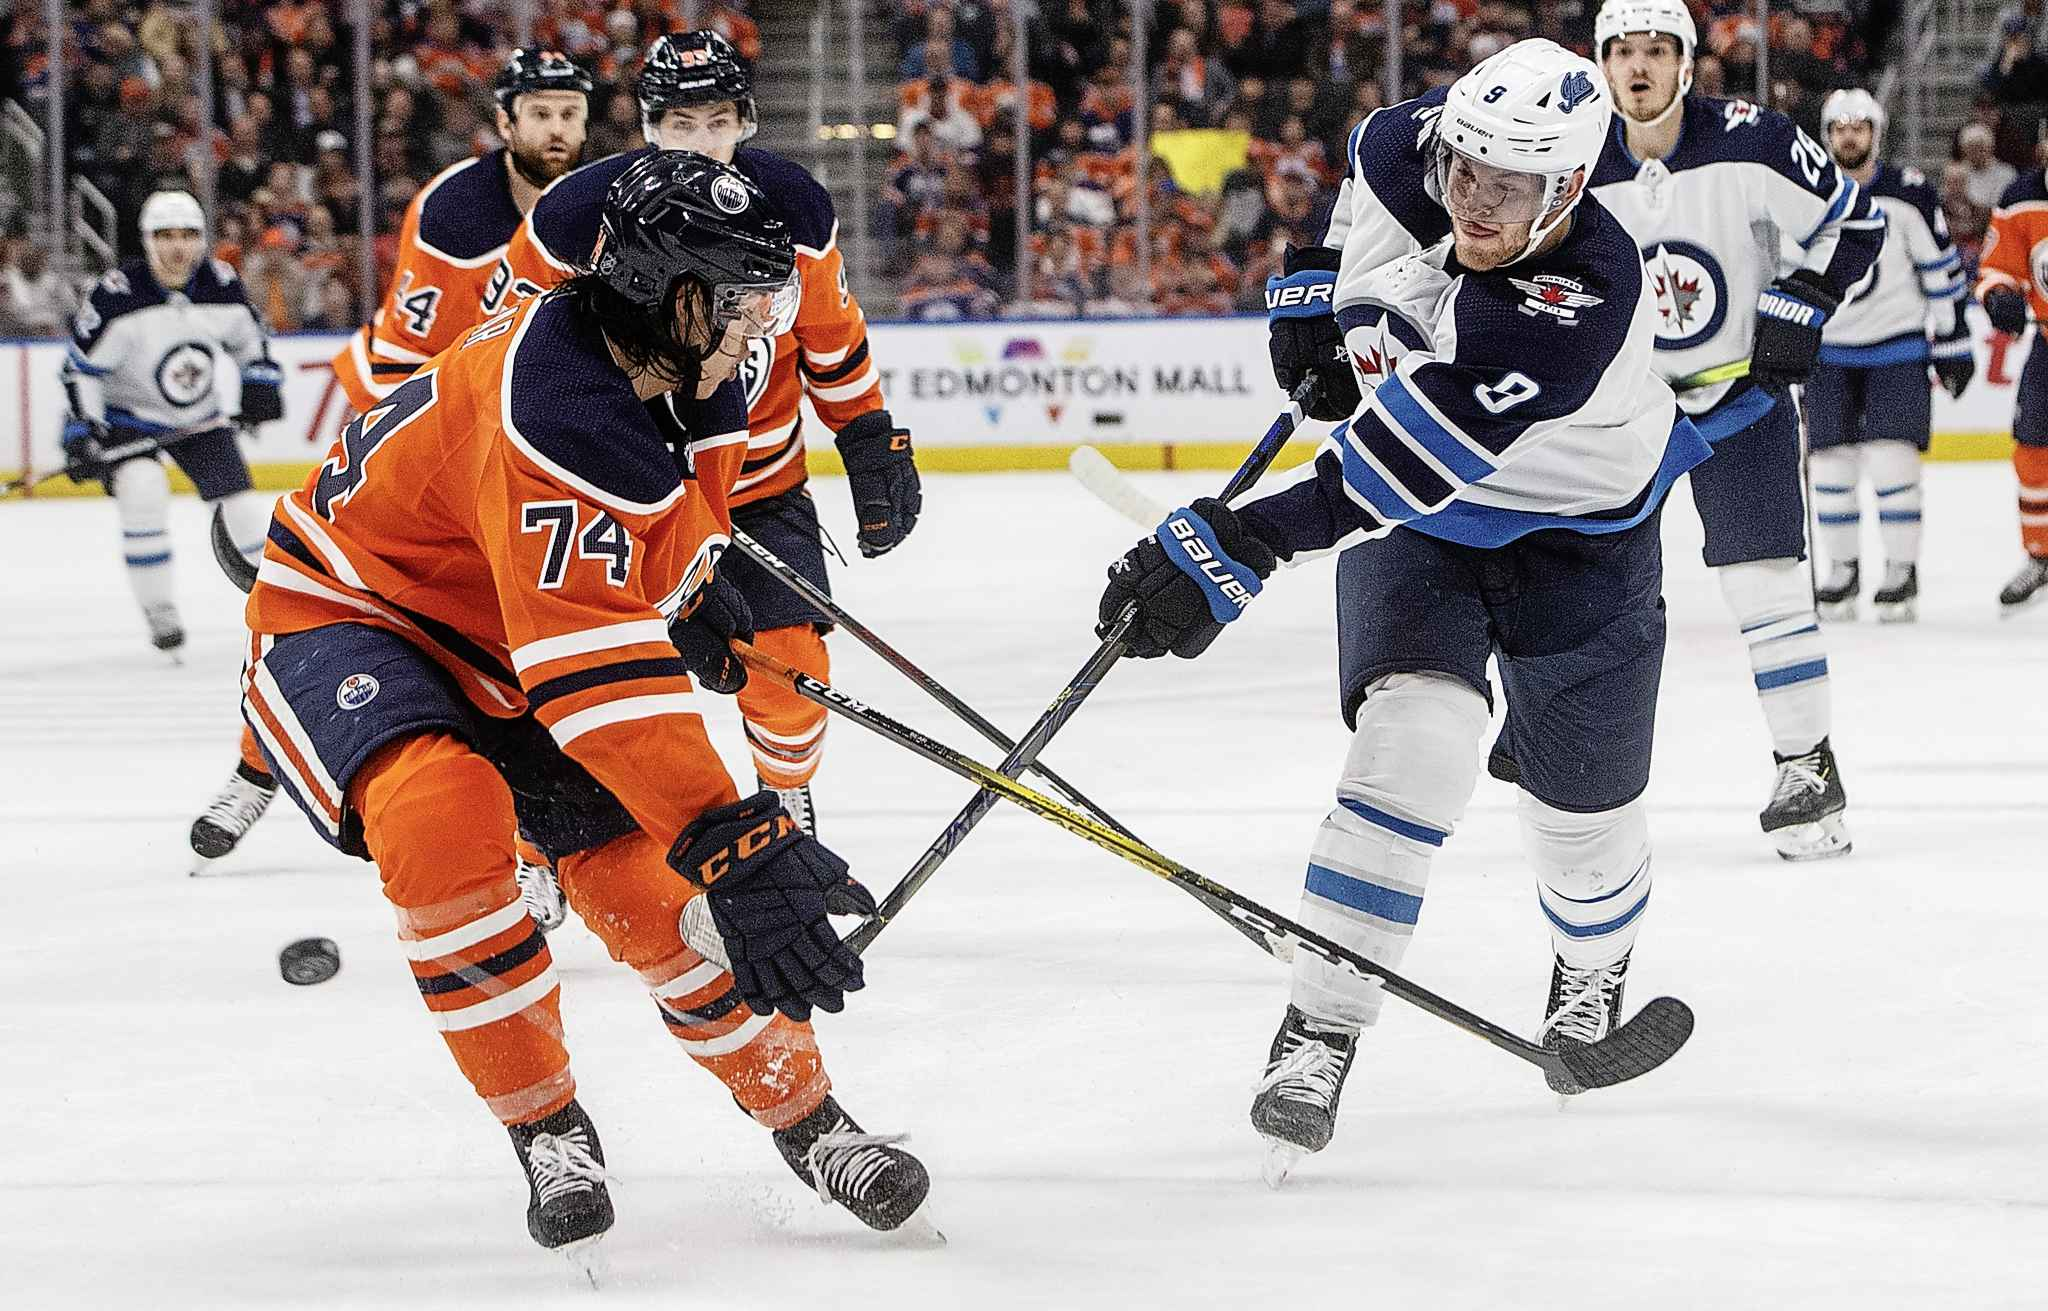 Winnipeg Jets' Andrew Copp takes a shot as Edmonton Oilers' Ethan Bear  tries to block it during the first period in Edmonton on Wednesday.